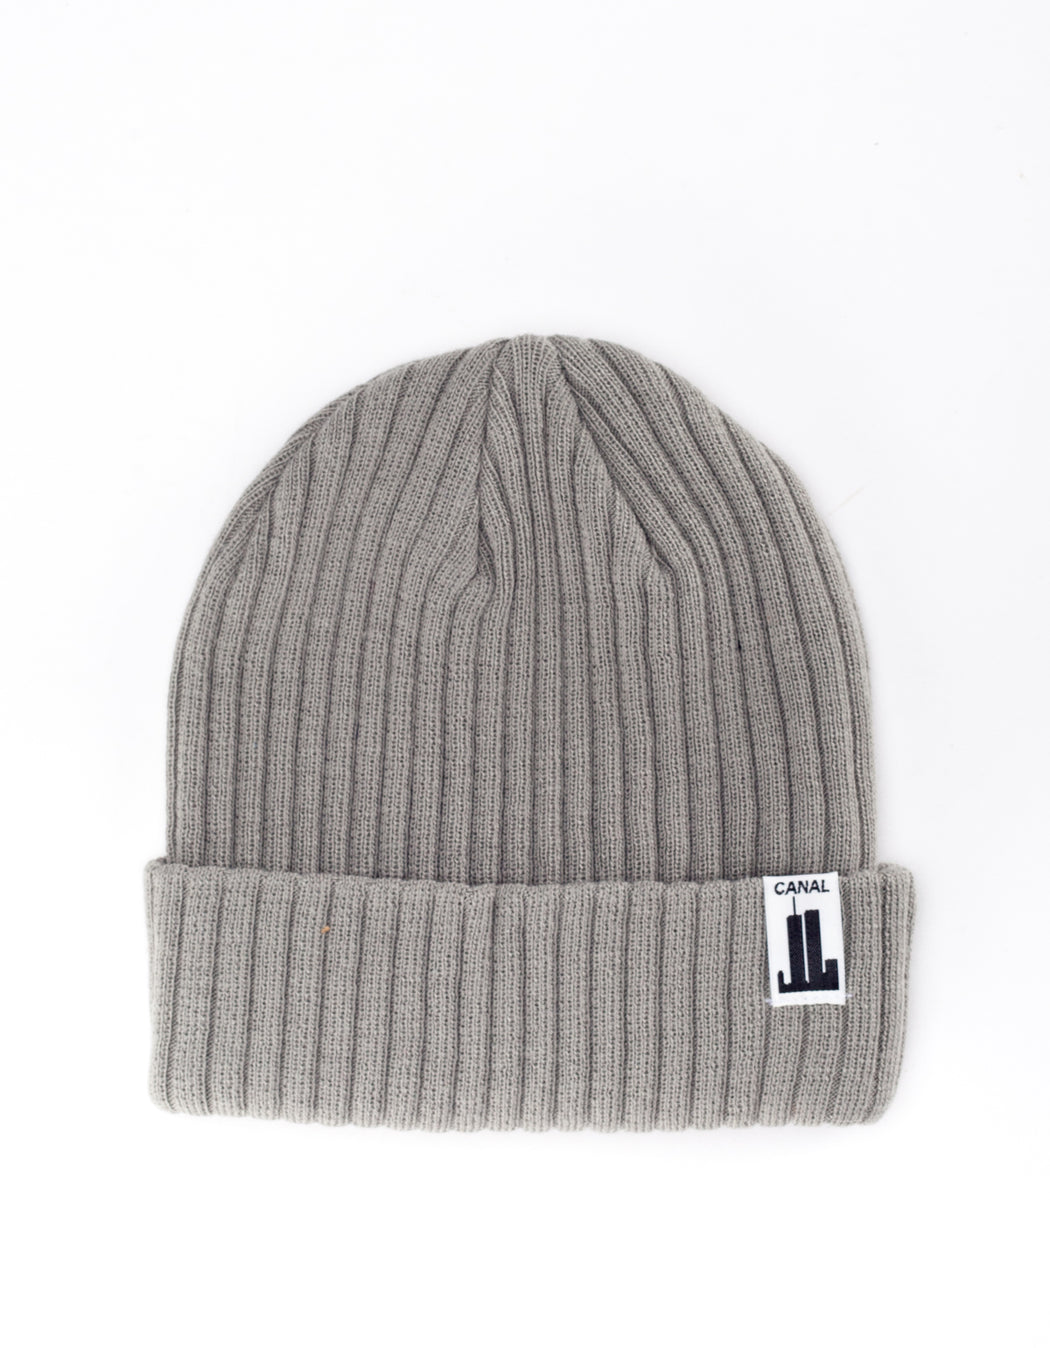 Canal NYC Towers Ribbed Beanie Steel